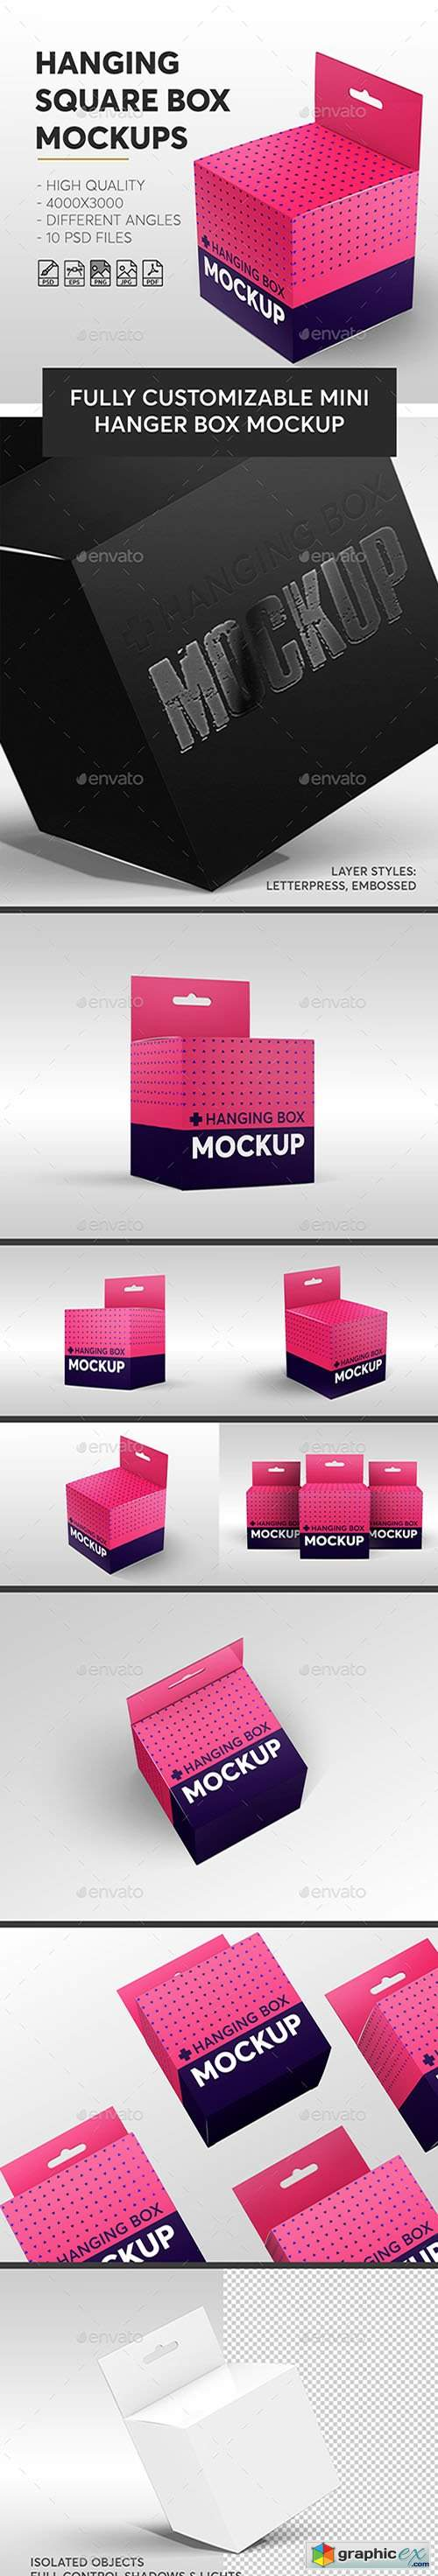 Hanging Square Box Mockups V.1 | Miscellaneous